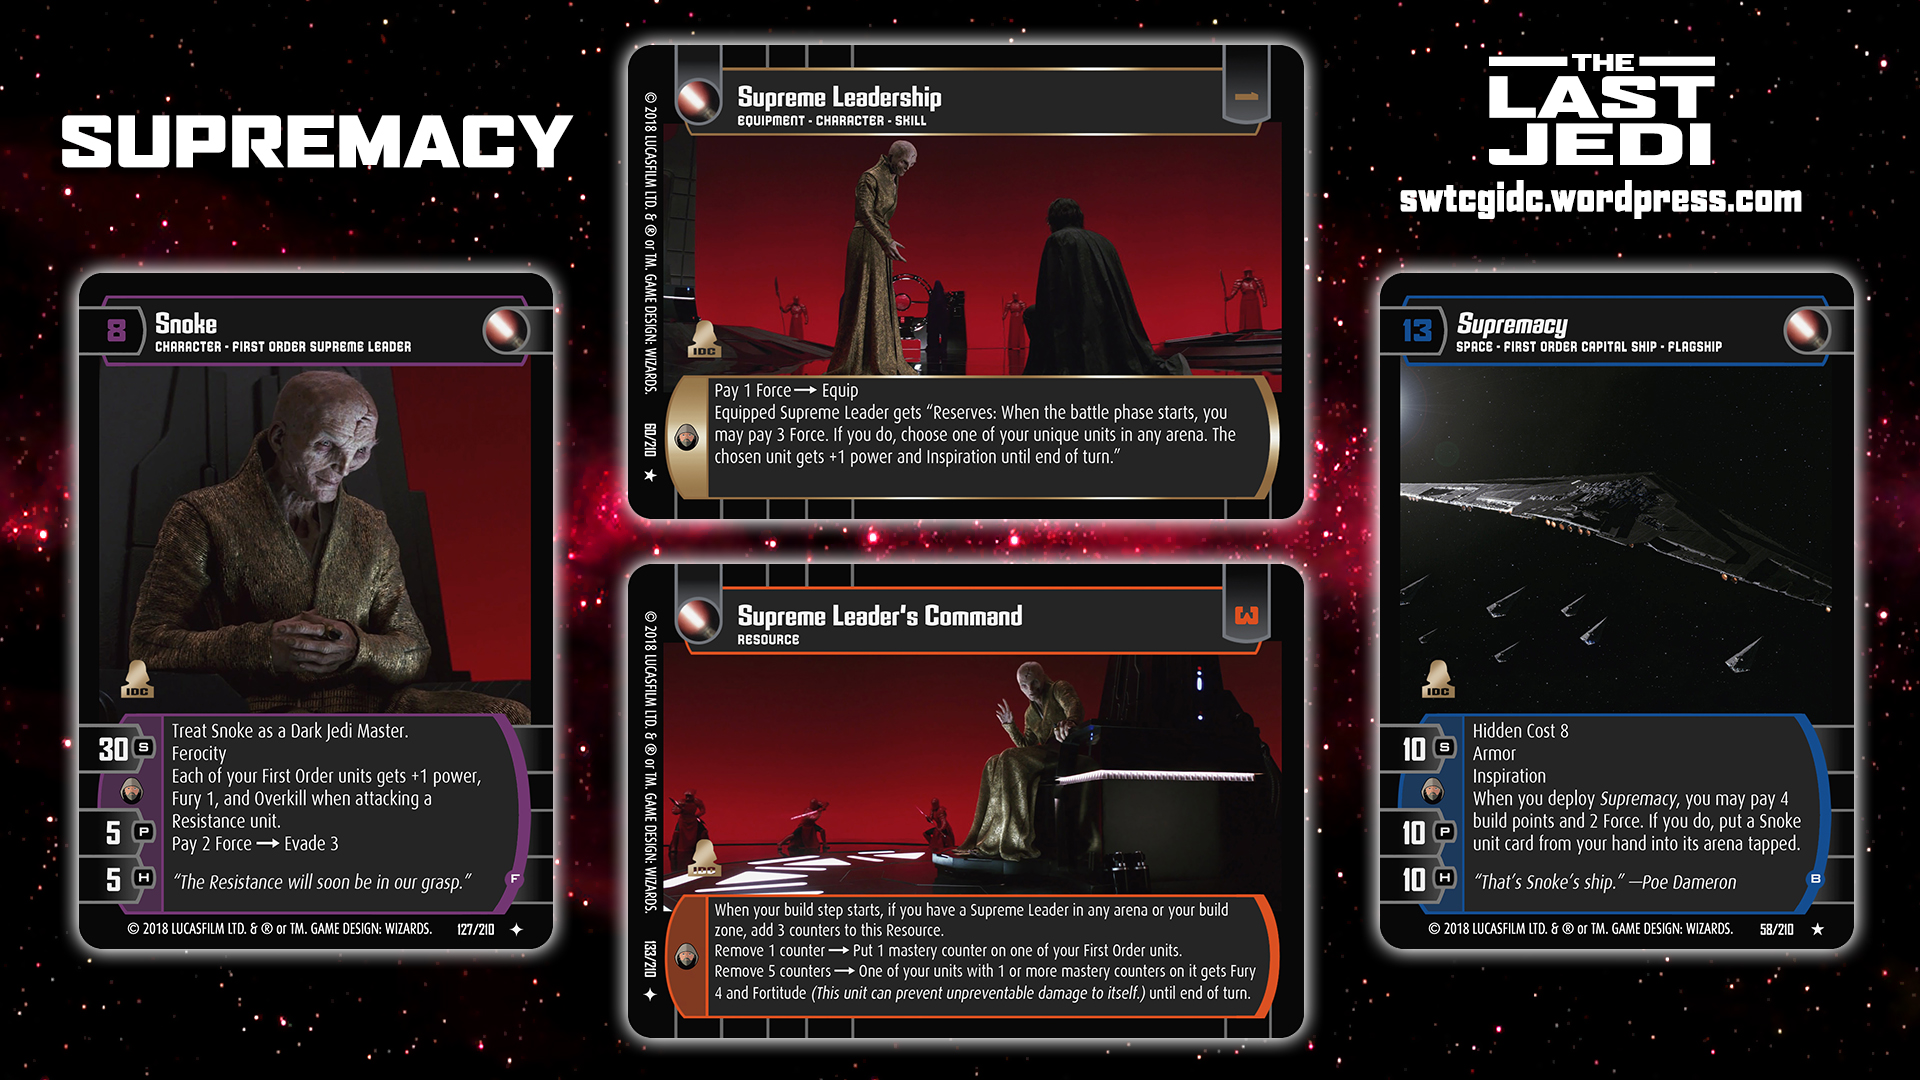 Star Wars Trading Card Game Tlj Wallpaper 5 Supremacy Star Wars Trading Card Game Independent Development Committee